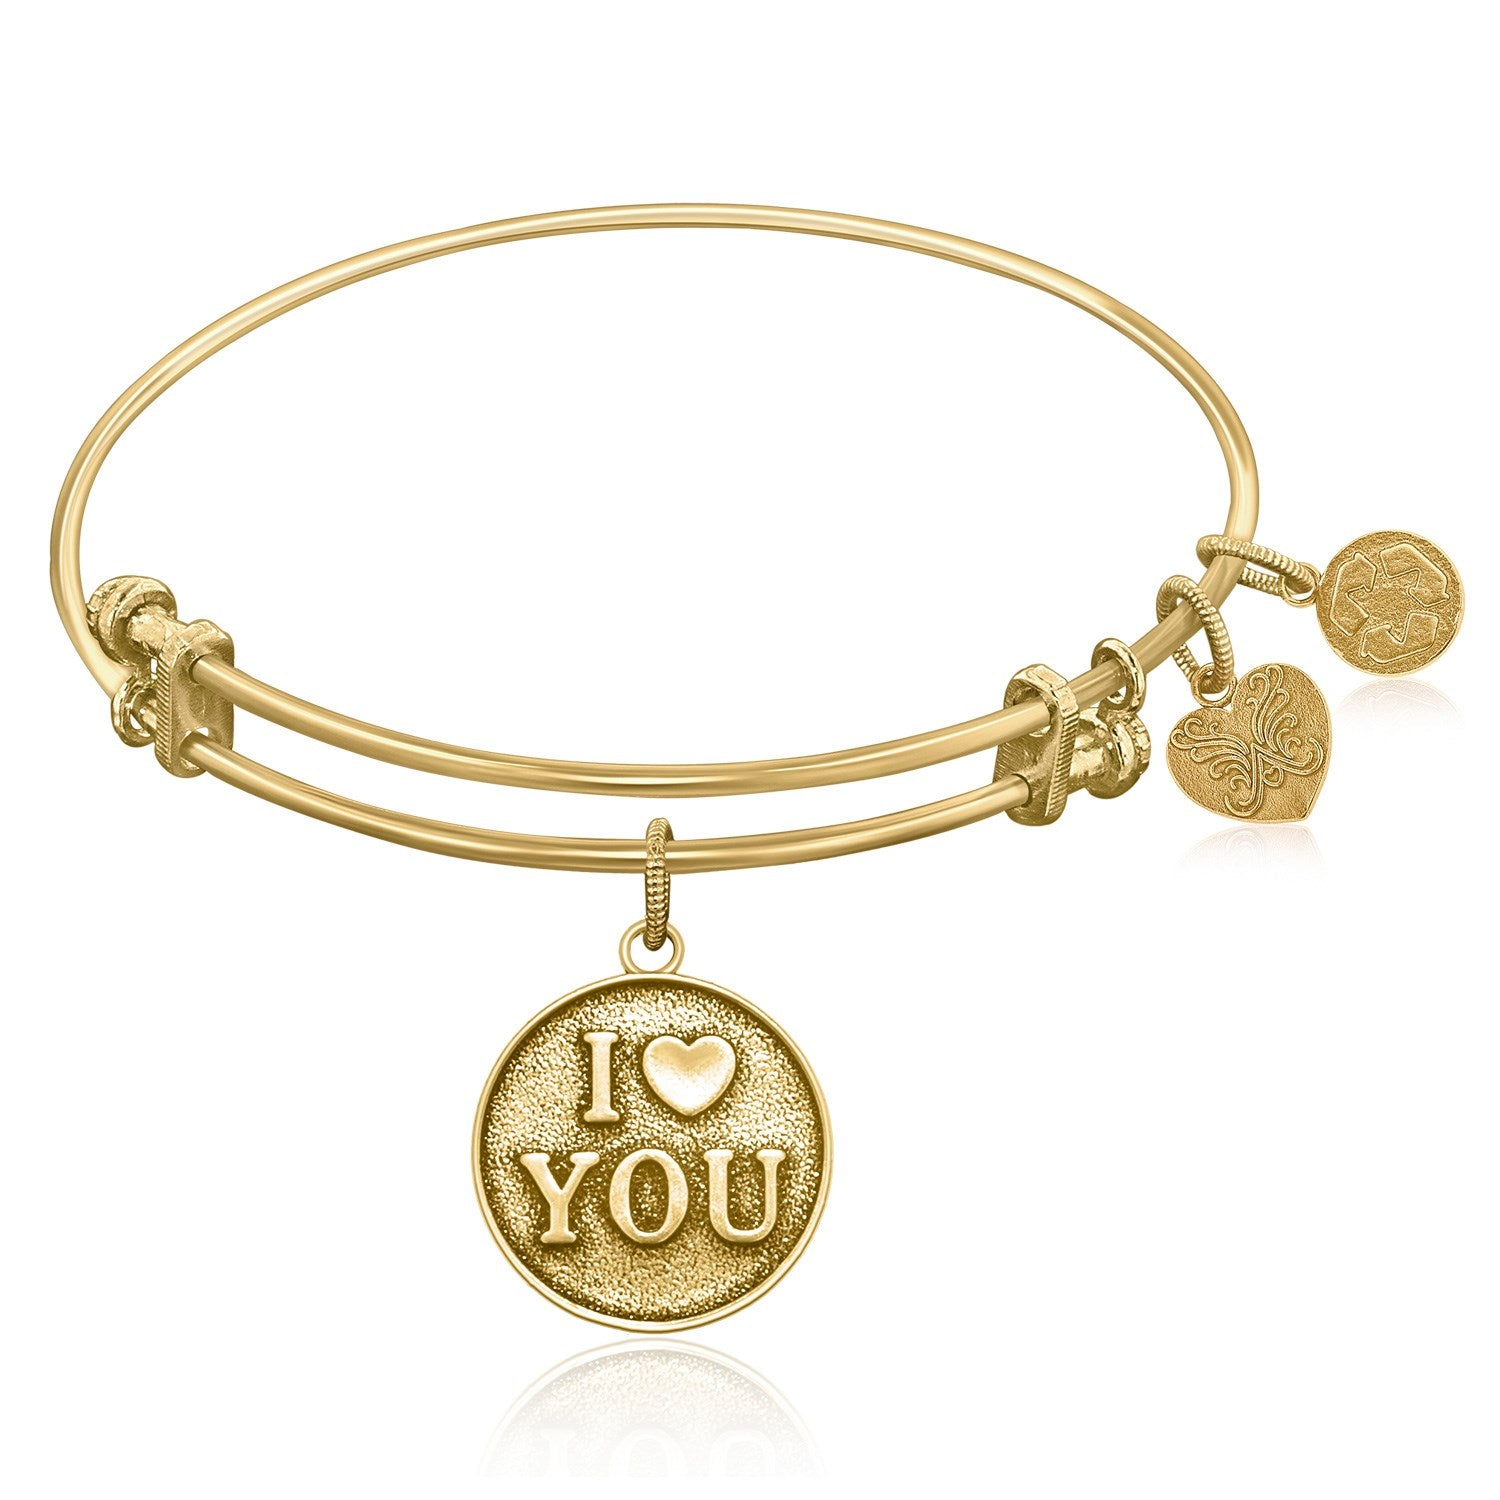 Expandable Bangle in Yellow Tone Brass with I Love You Symbol